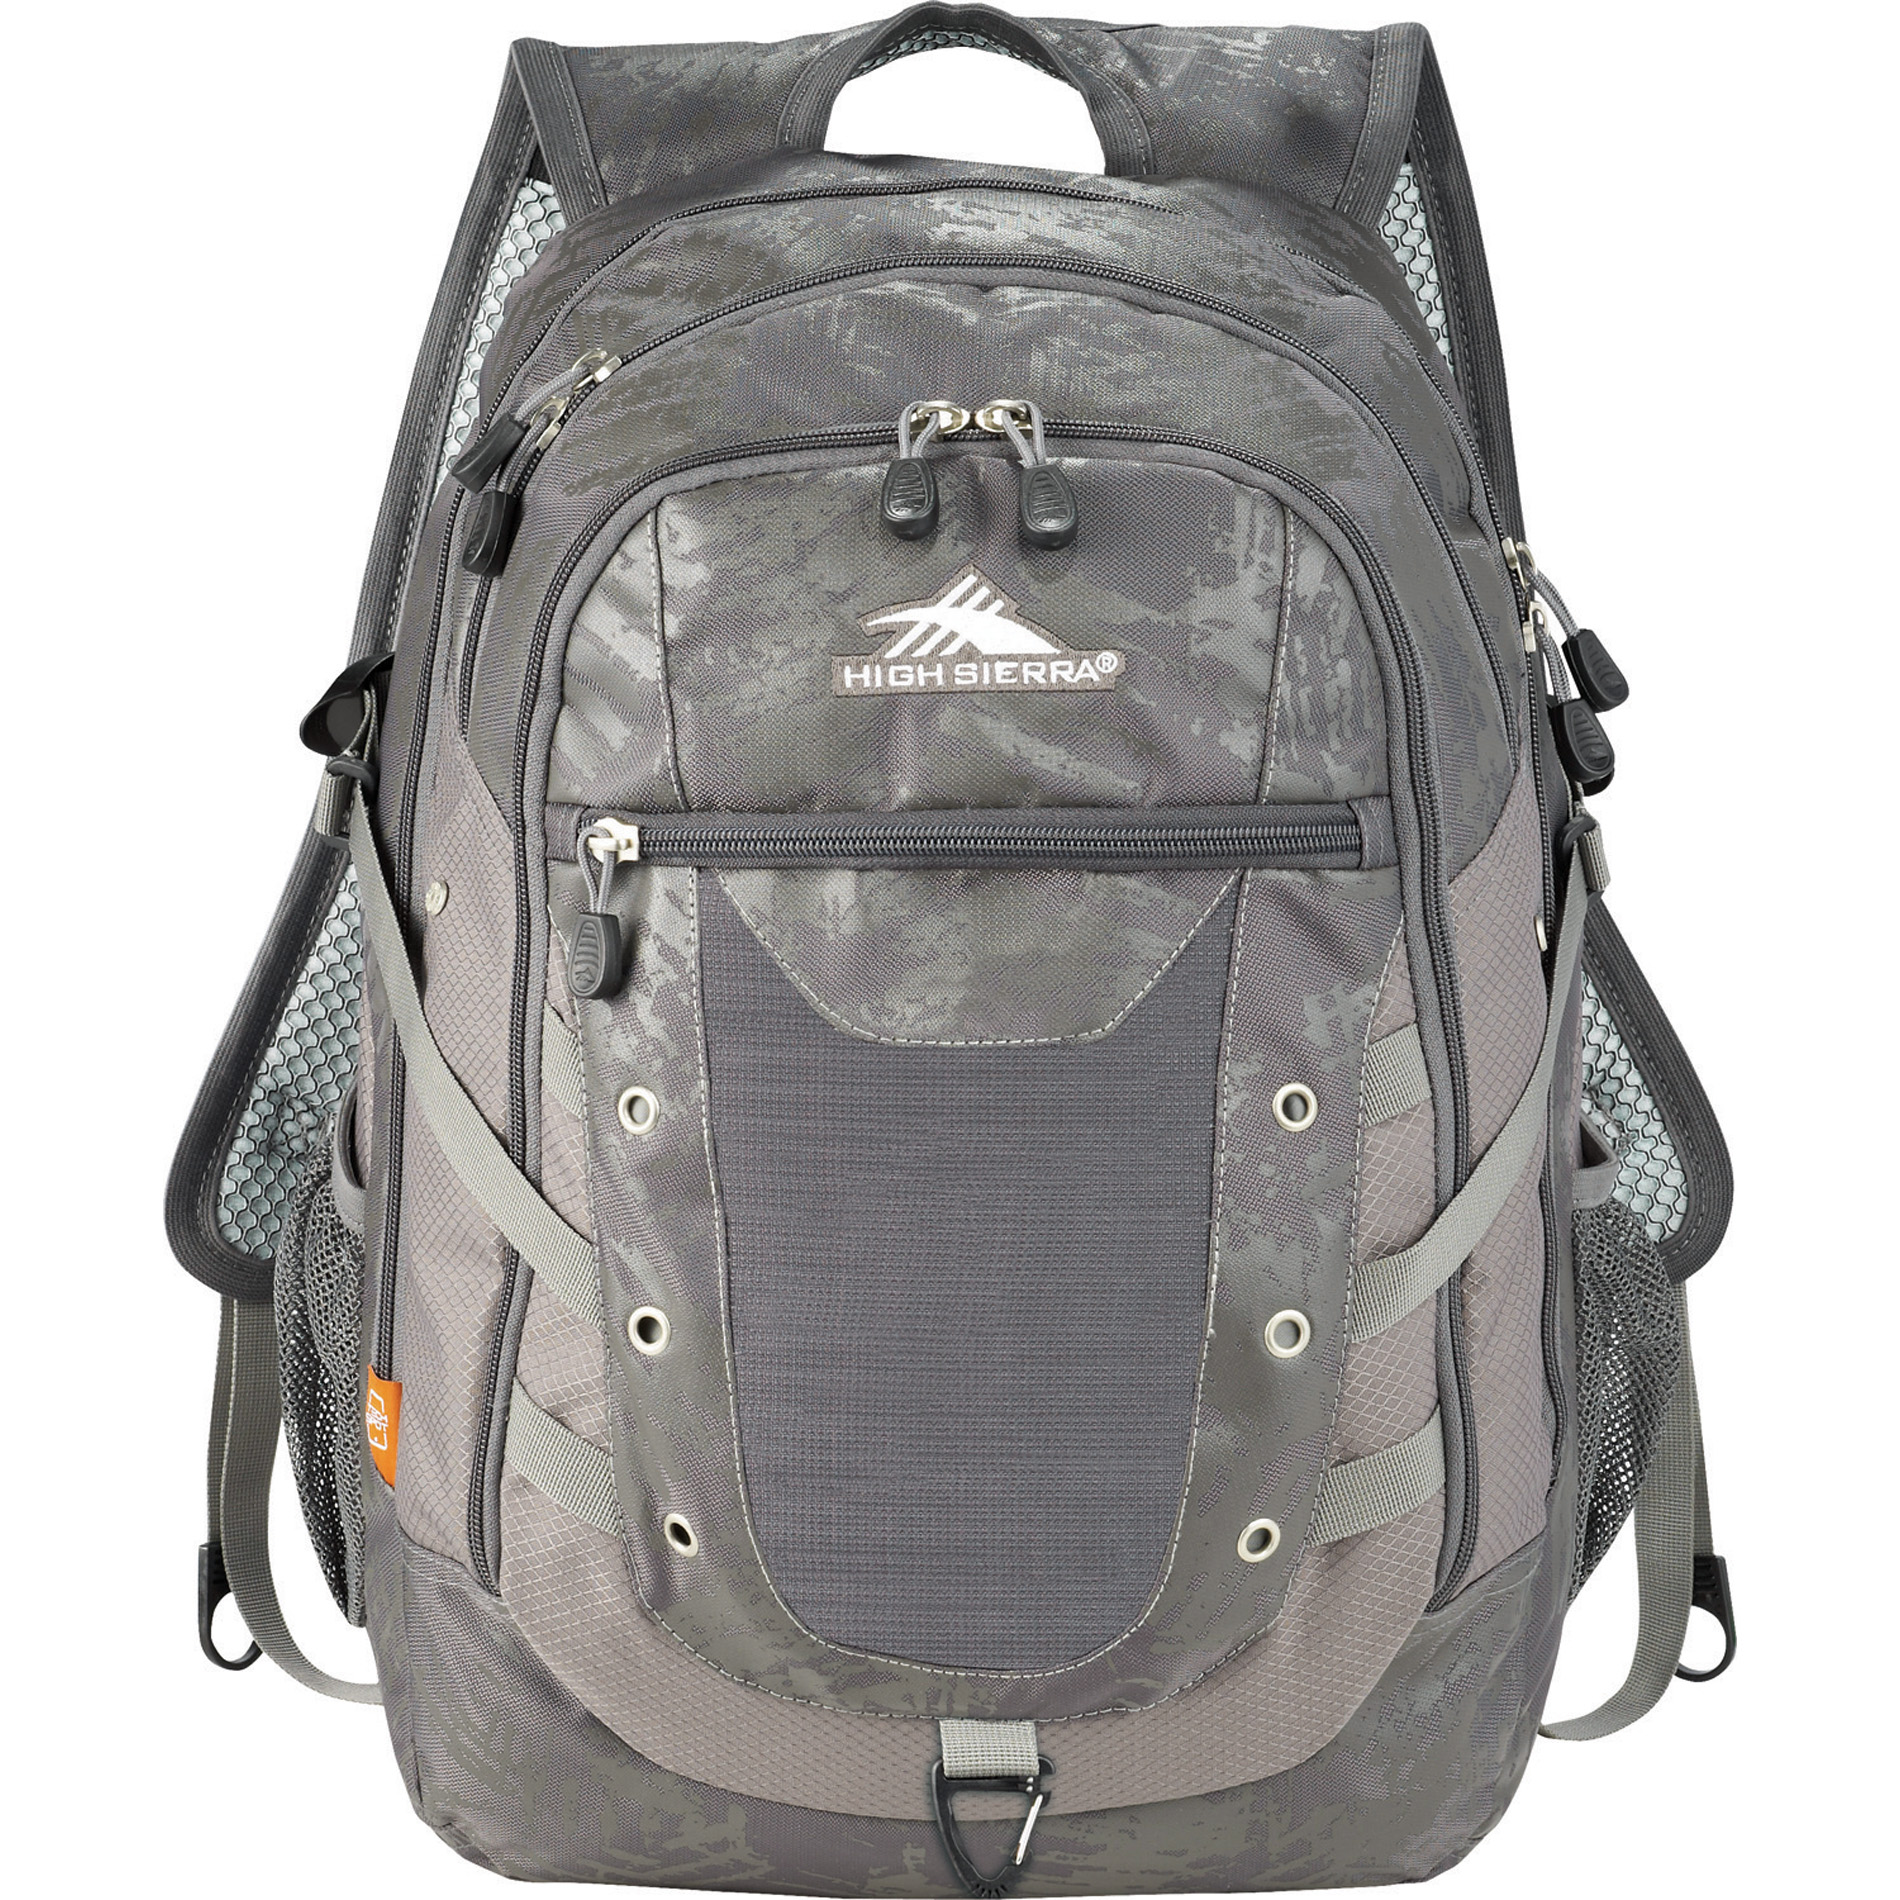 "High Sierra 8051-49 - Tactic 17"" Computer Backpack"